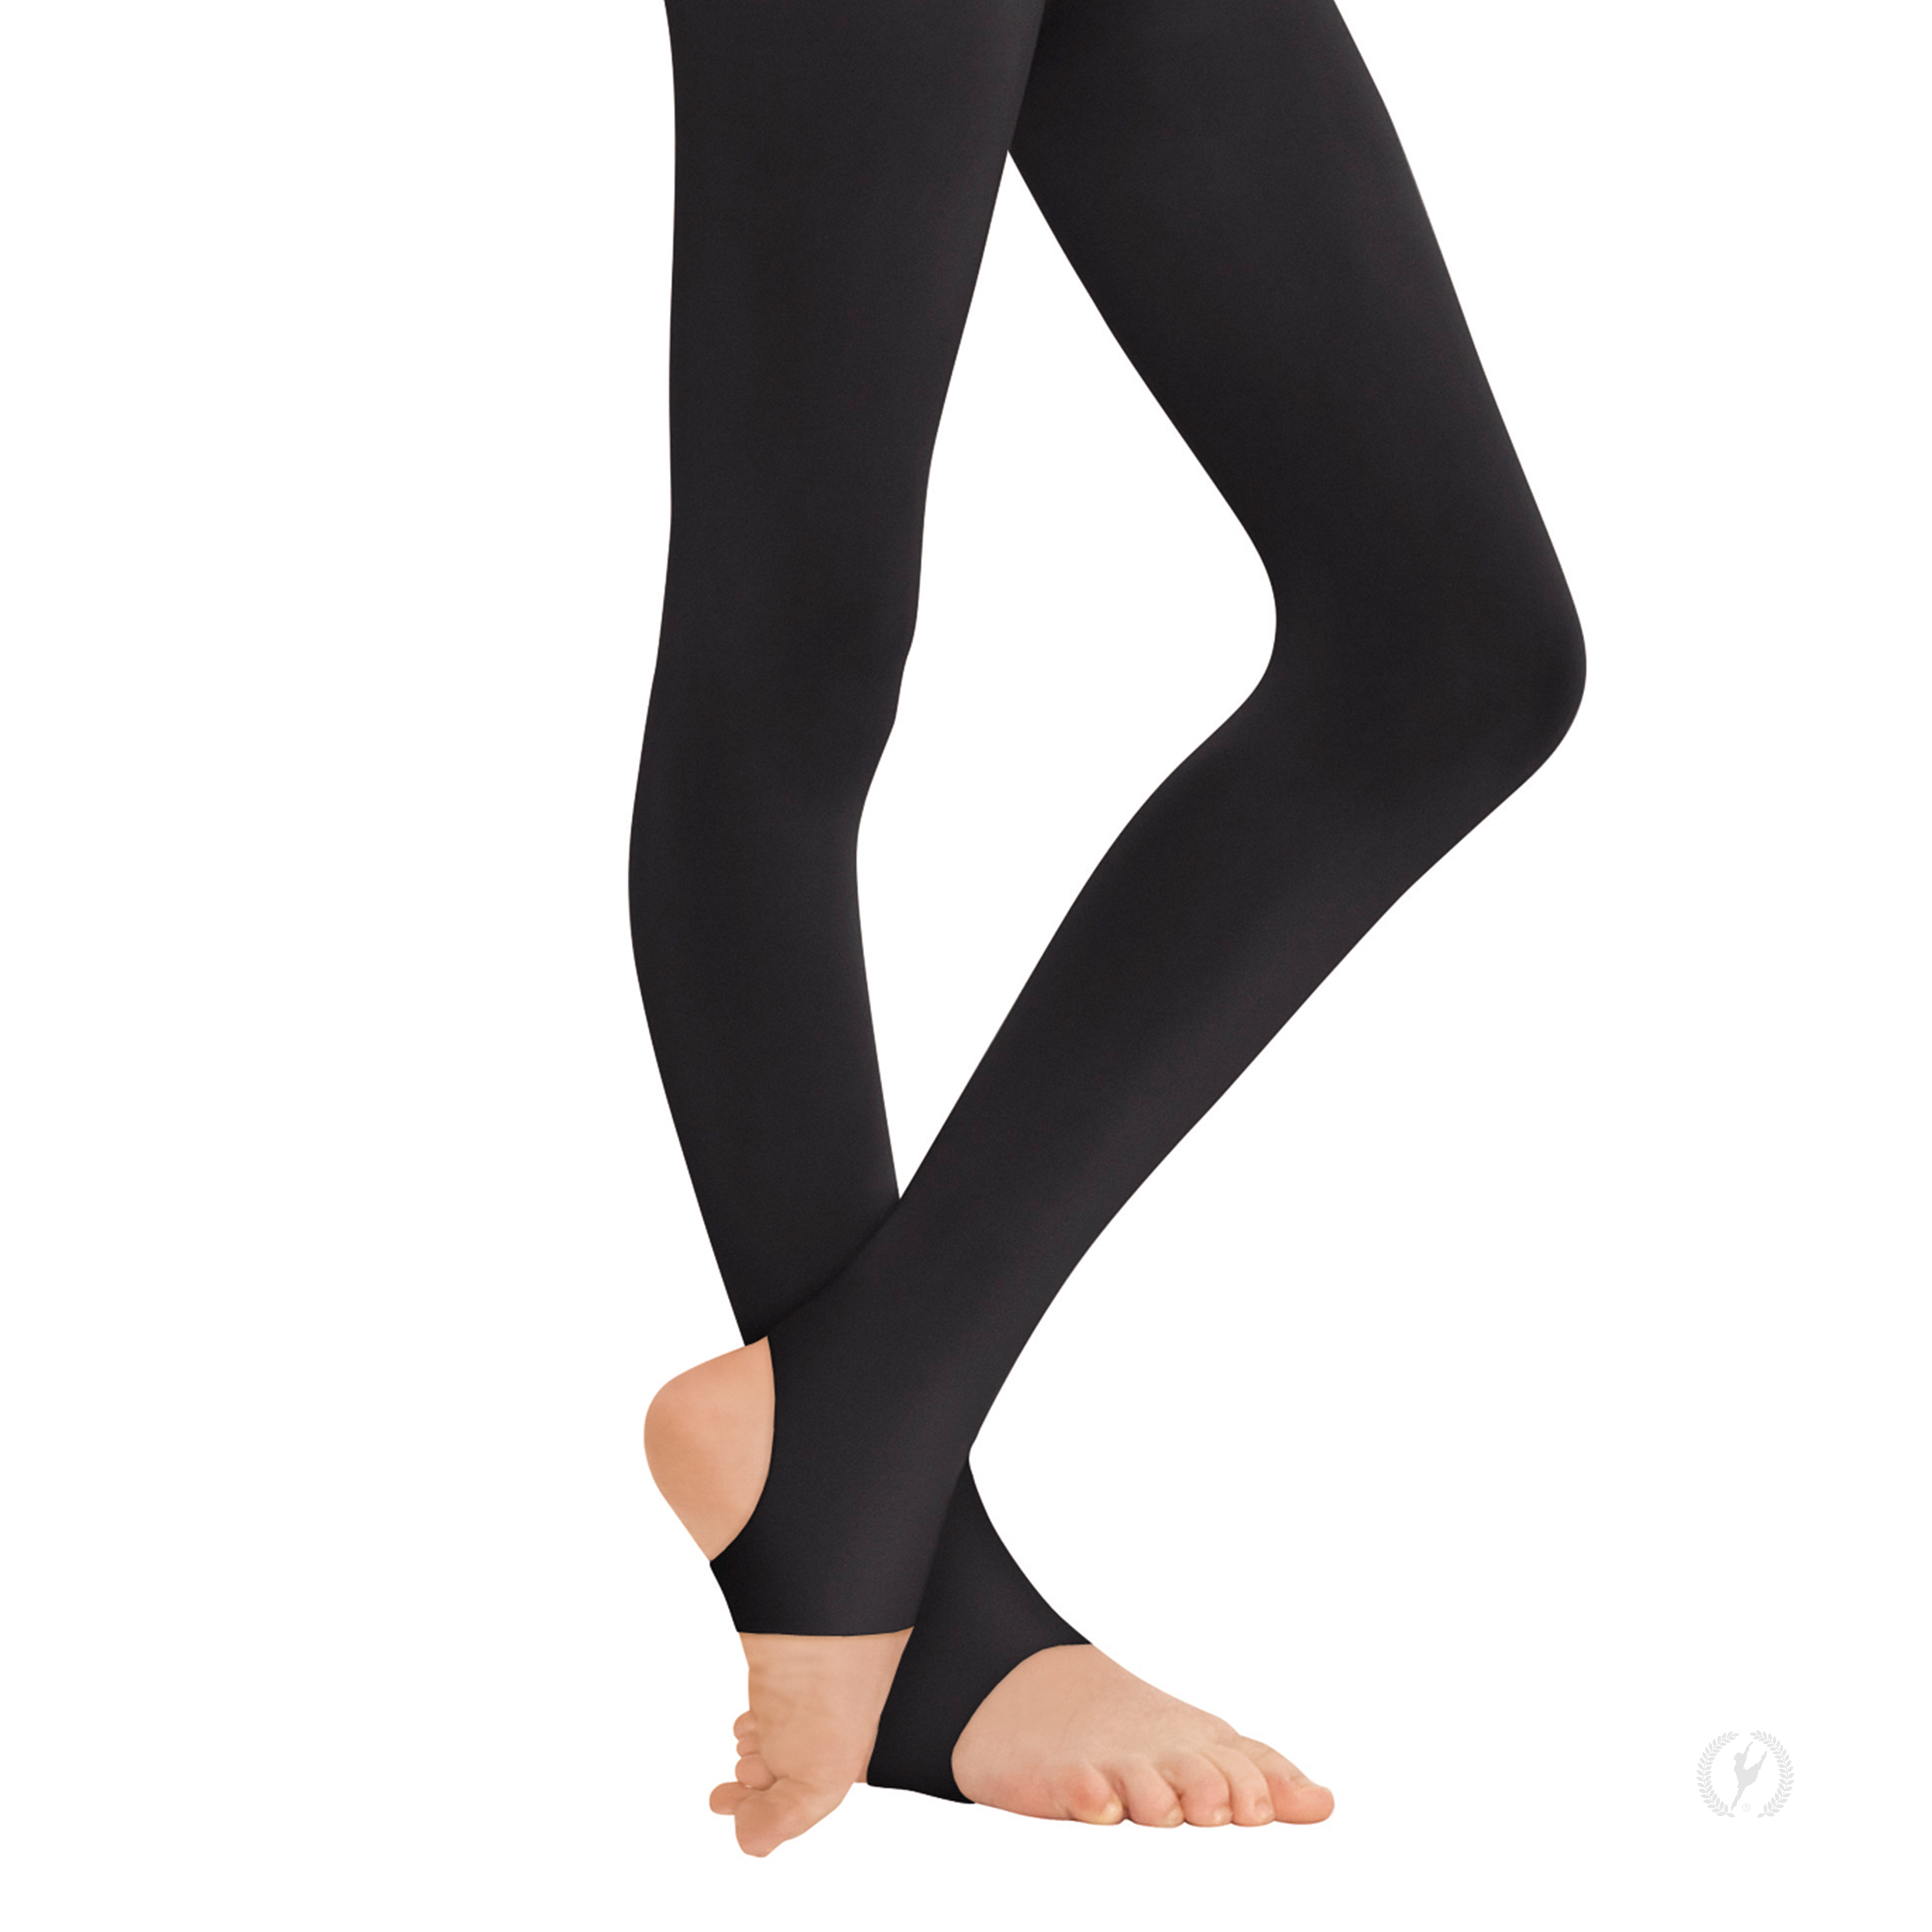 a3c09798793 217c - Eurotard Girls Non-Run Stirrup Tights with Soft Knit Waistband by  EuroSkins